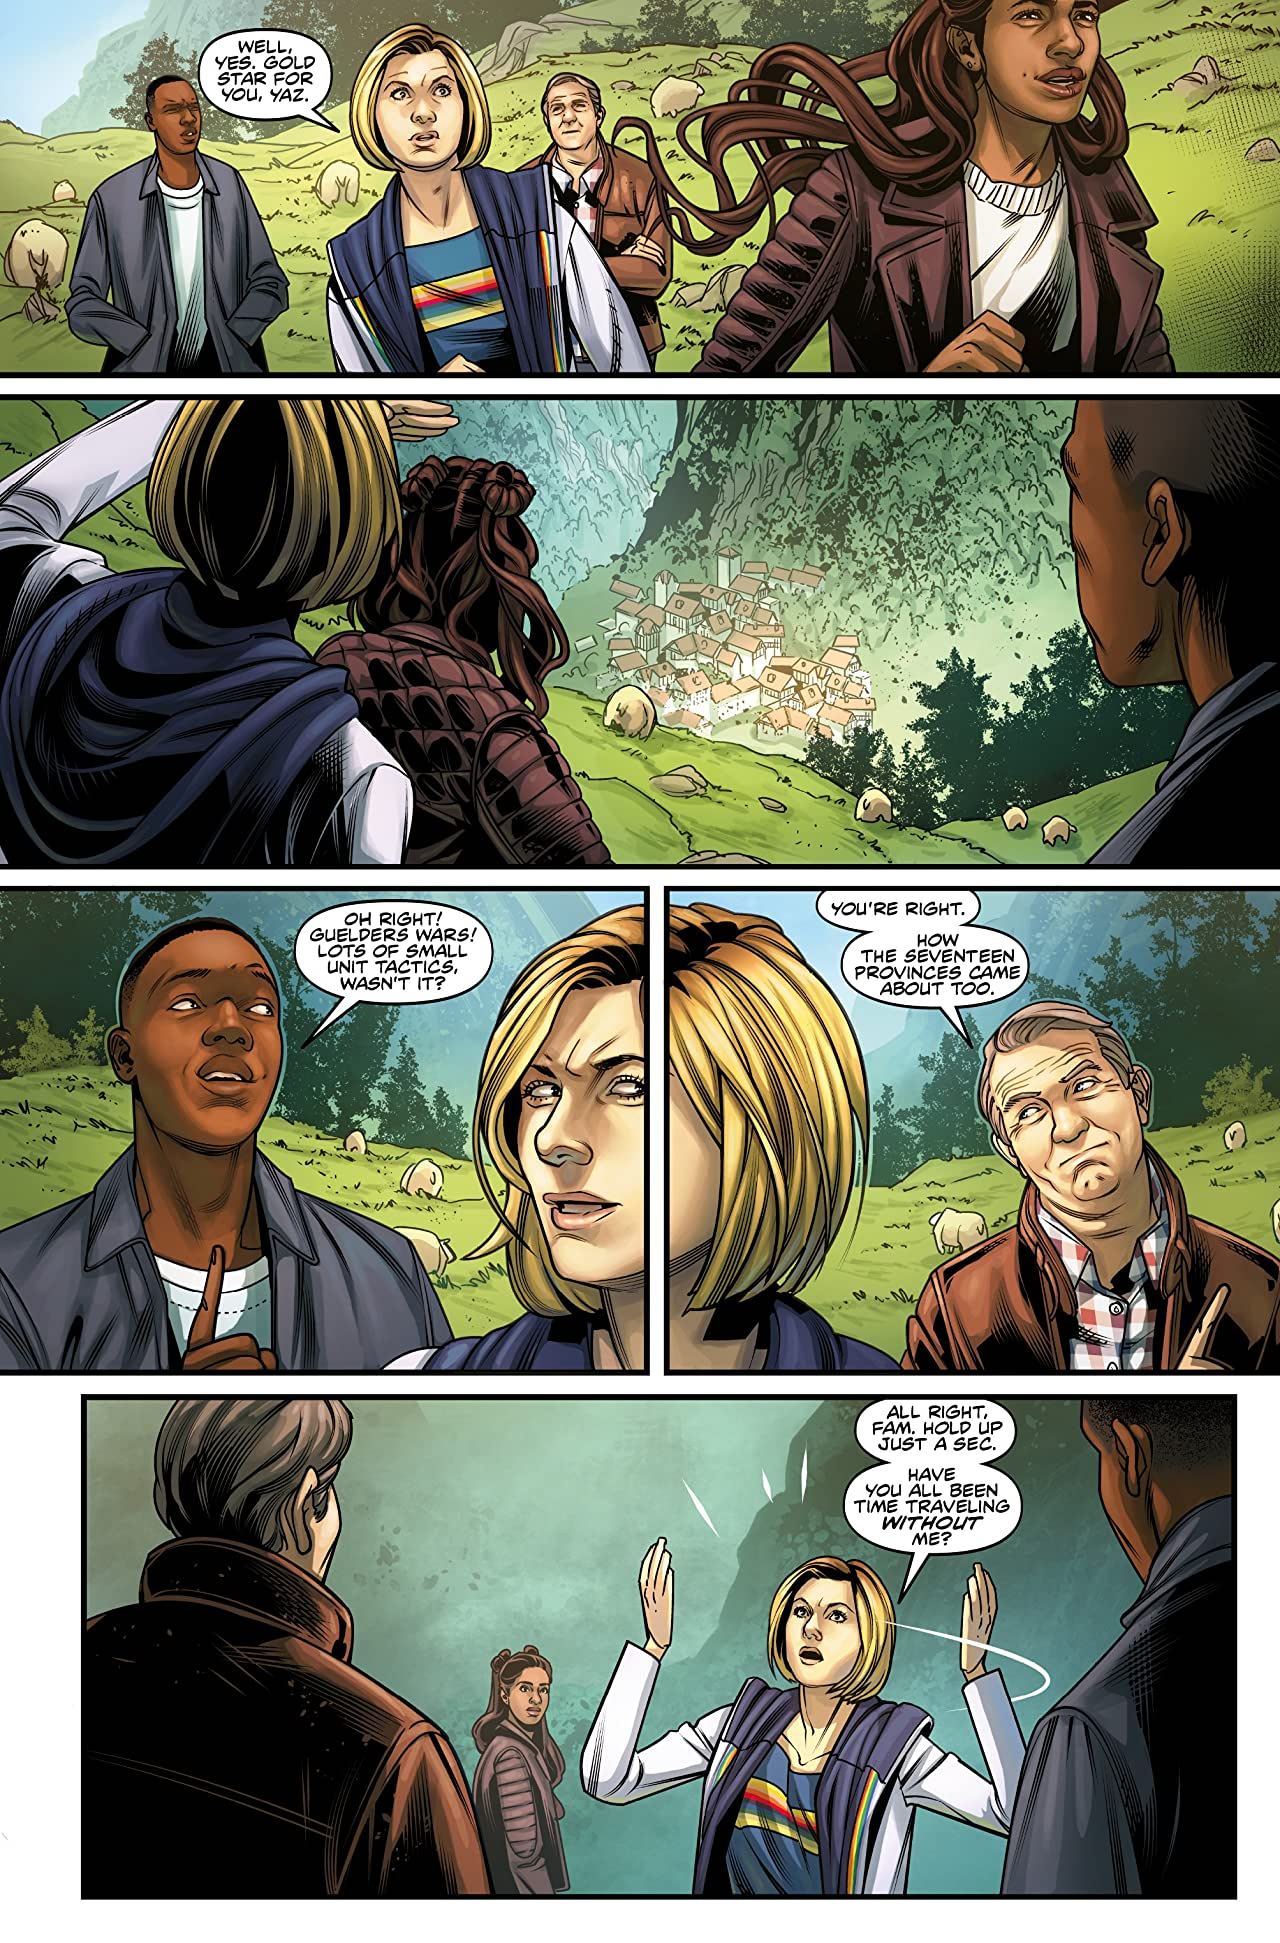 Doctor Who: The Thirteenth Doctor #5